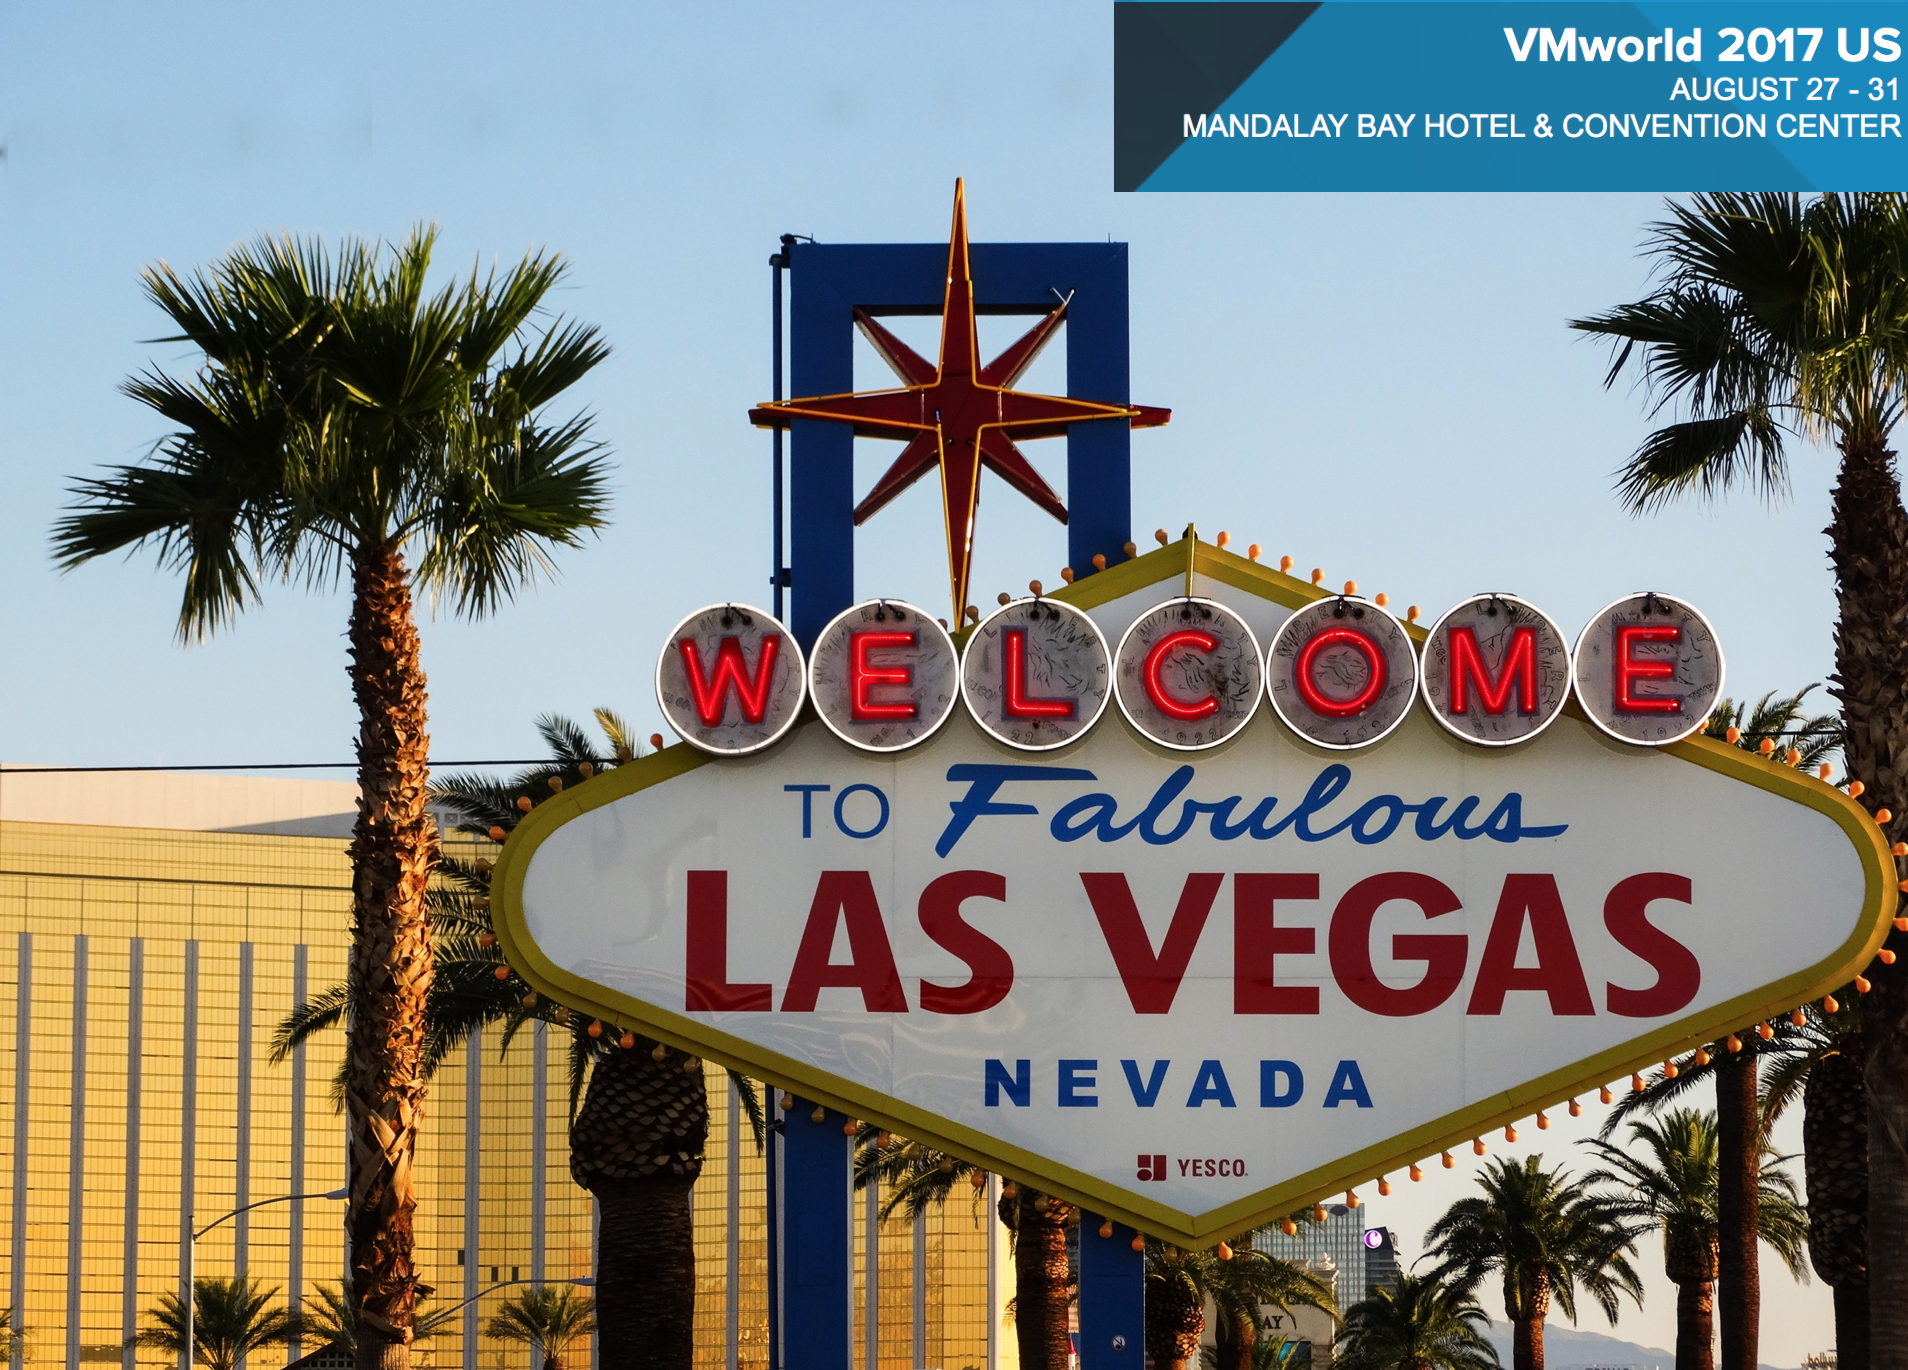 VMworld 2017 Las Vegas – Preparation: hotel, voting, ESTA and more…